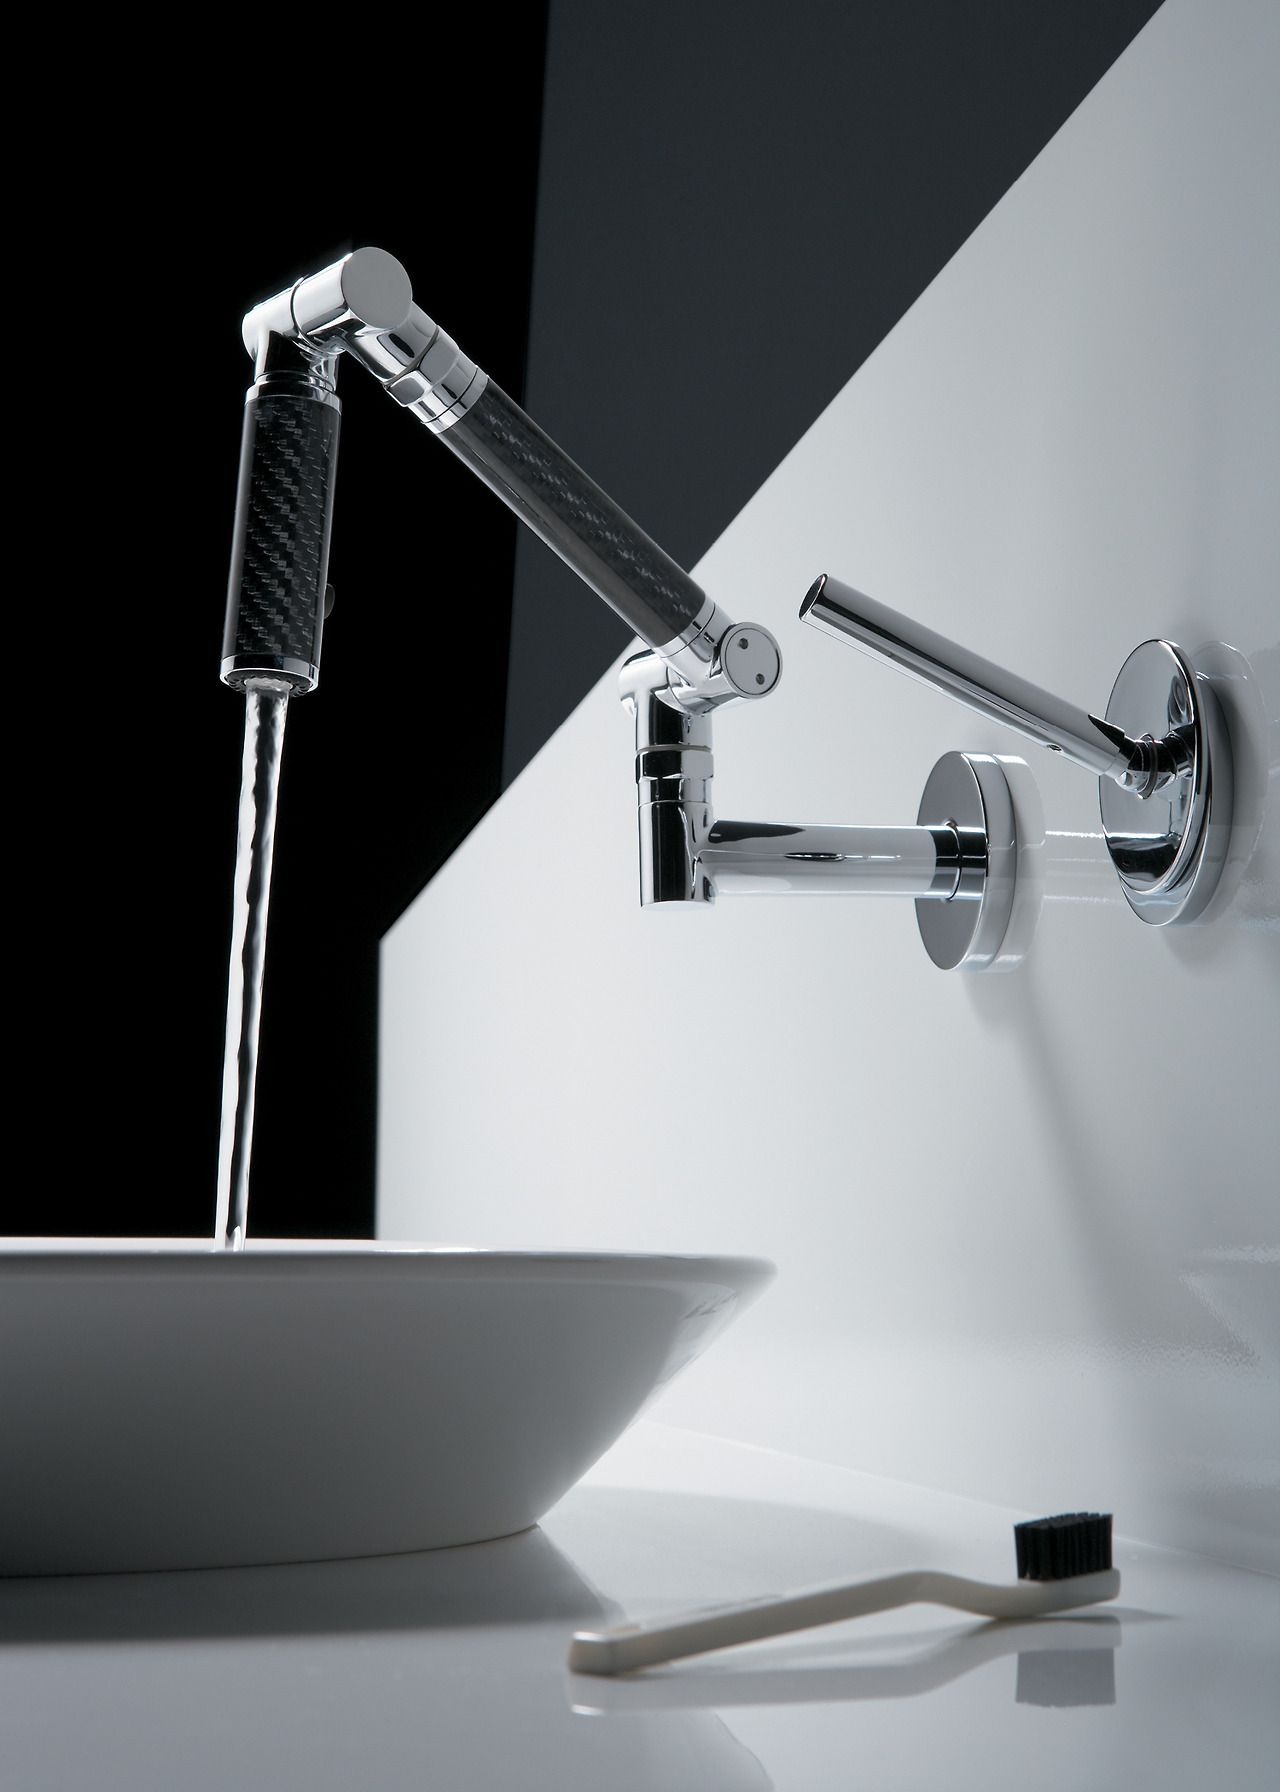 The Bold Look of | Fixtures | Pinterest | Water flow, Faucet and Sinks